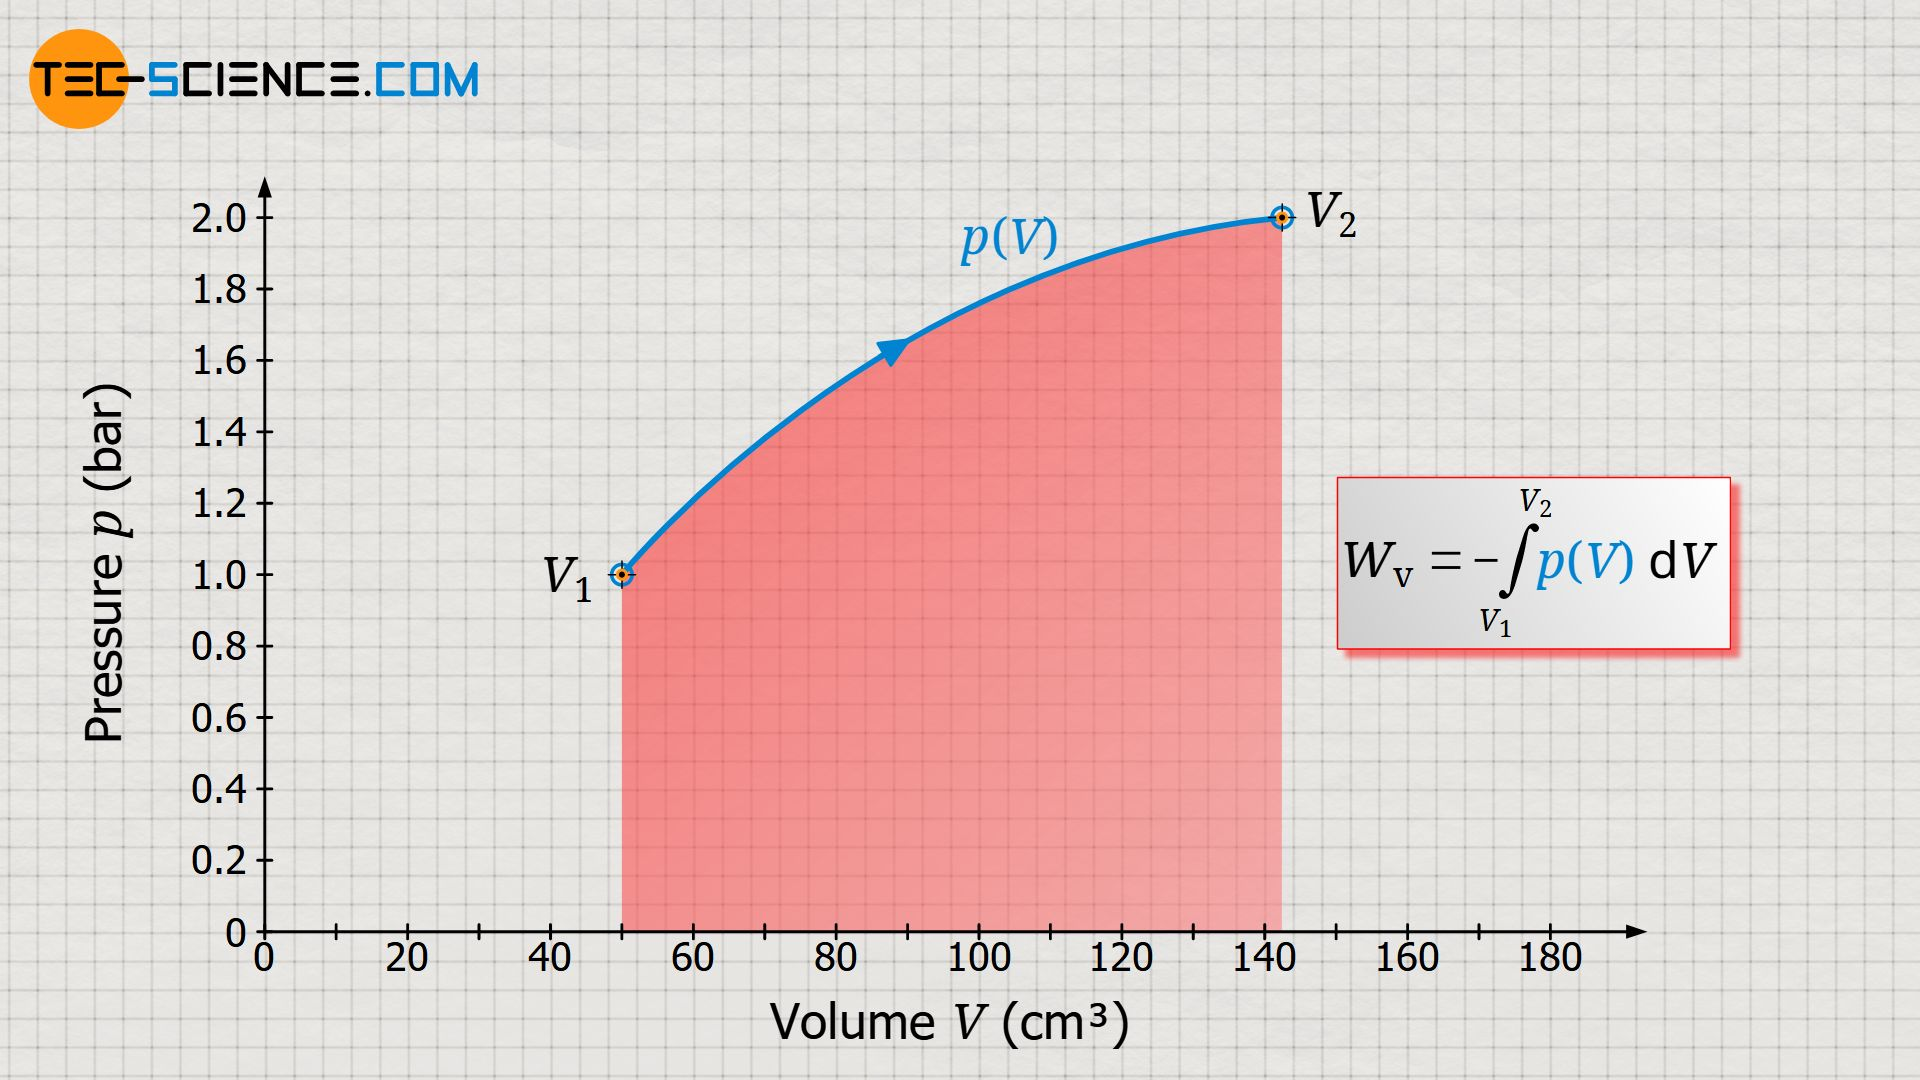 Calculation of pressure-volume work as the area under the p(V) curve